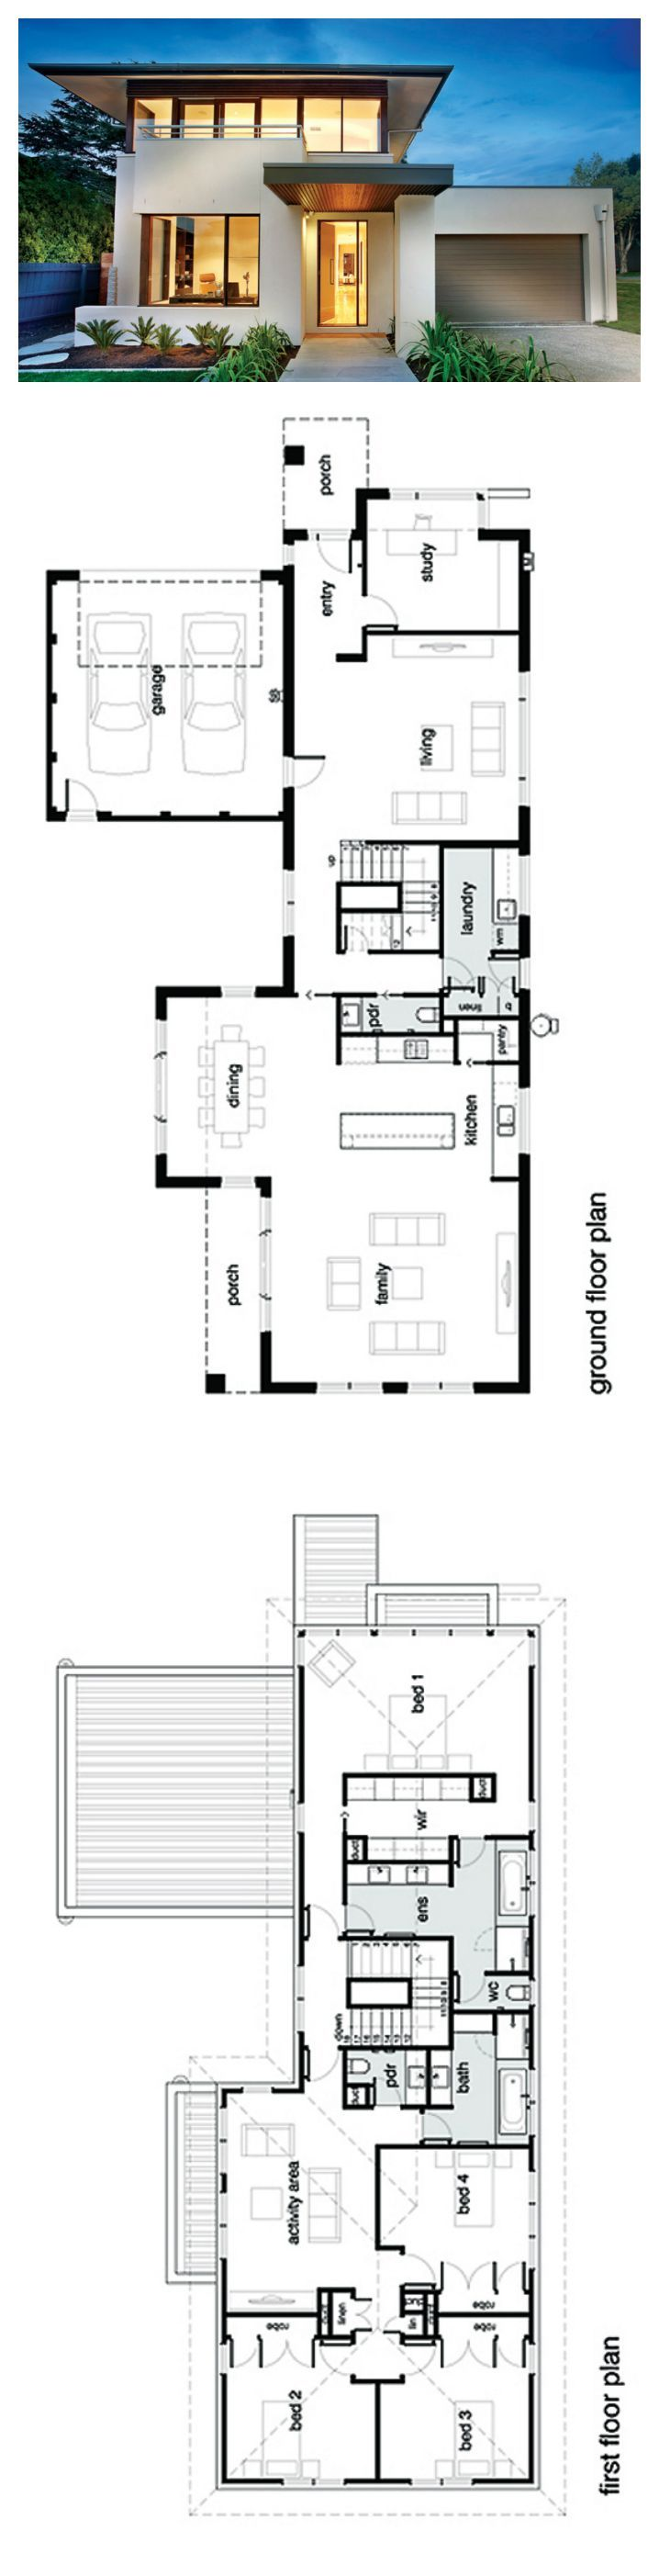 Best 25 modern house plans ideas on pinterest modern for Modern home design 1 floor